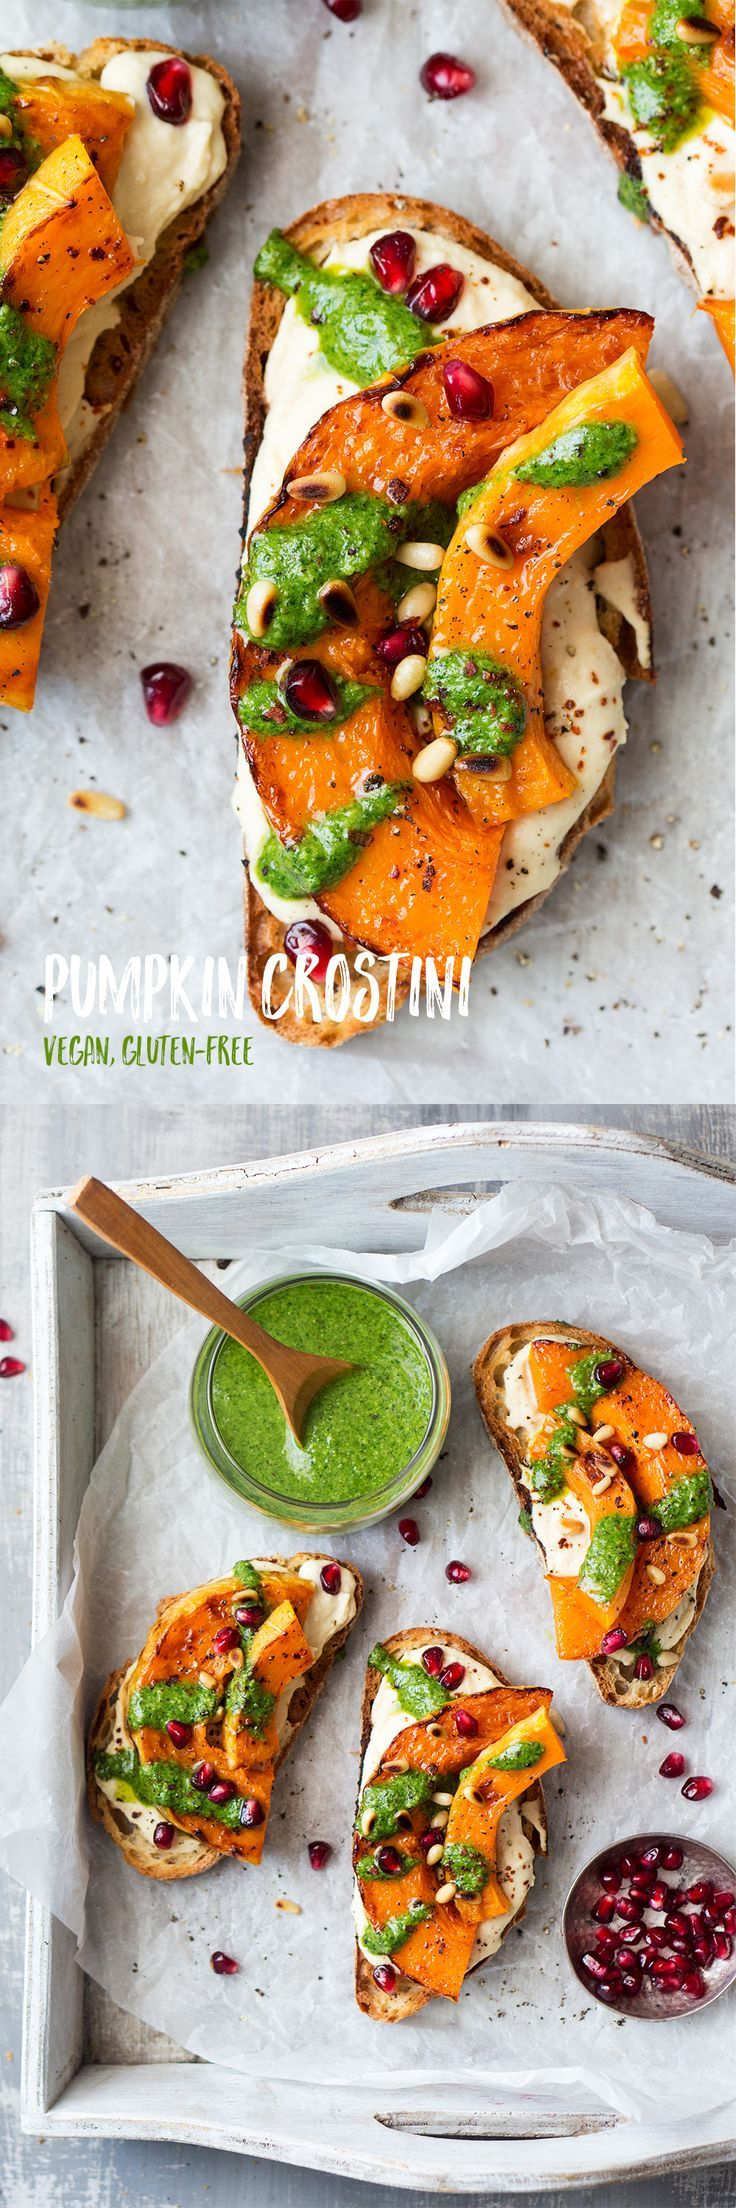 This #easy #pumpkin #crostini makes a great #lunch or #snack. It's #vegan and can be #glutenfree. #recipe #recipes #sandwich #hummus #pesto